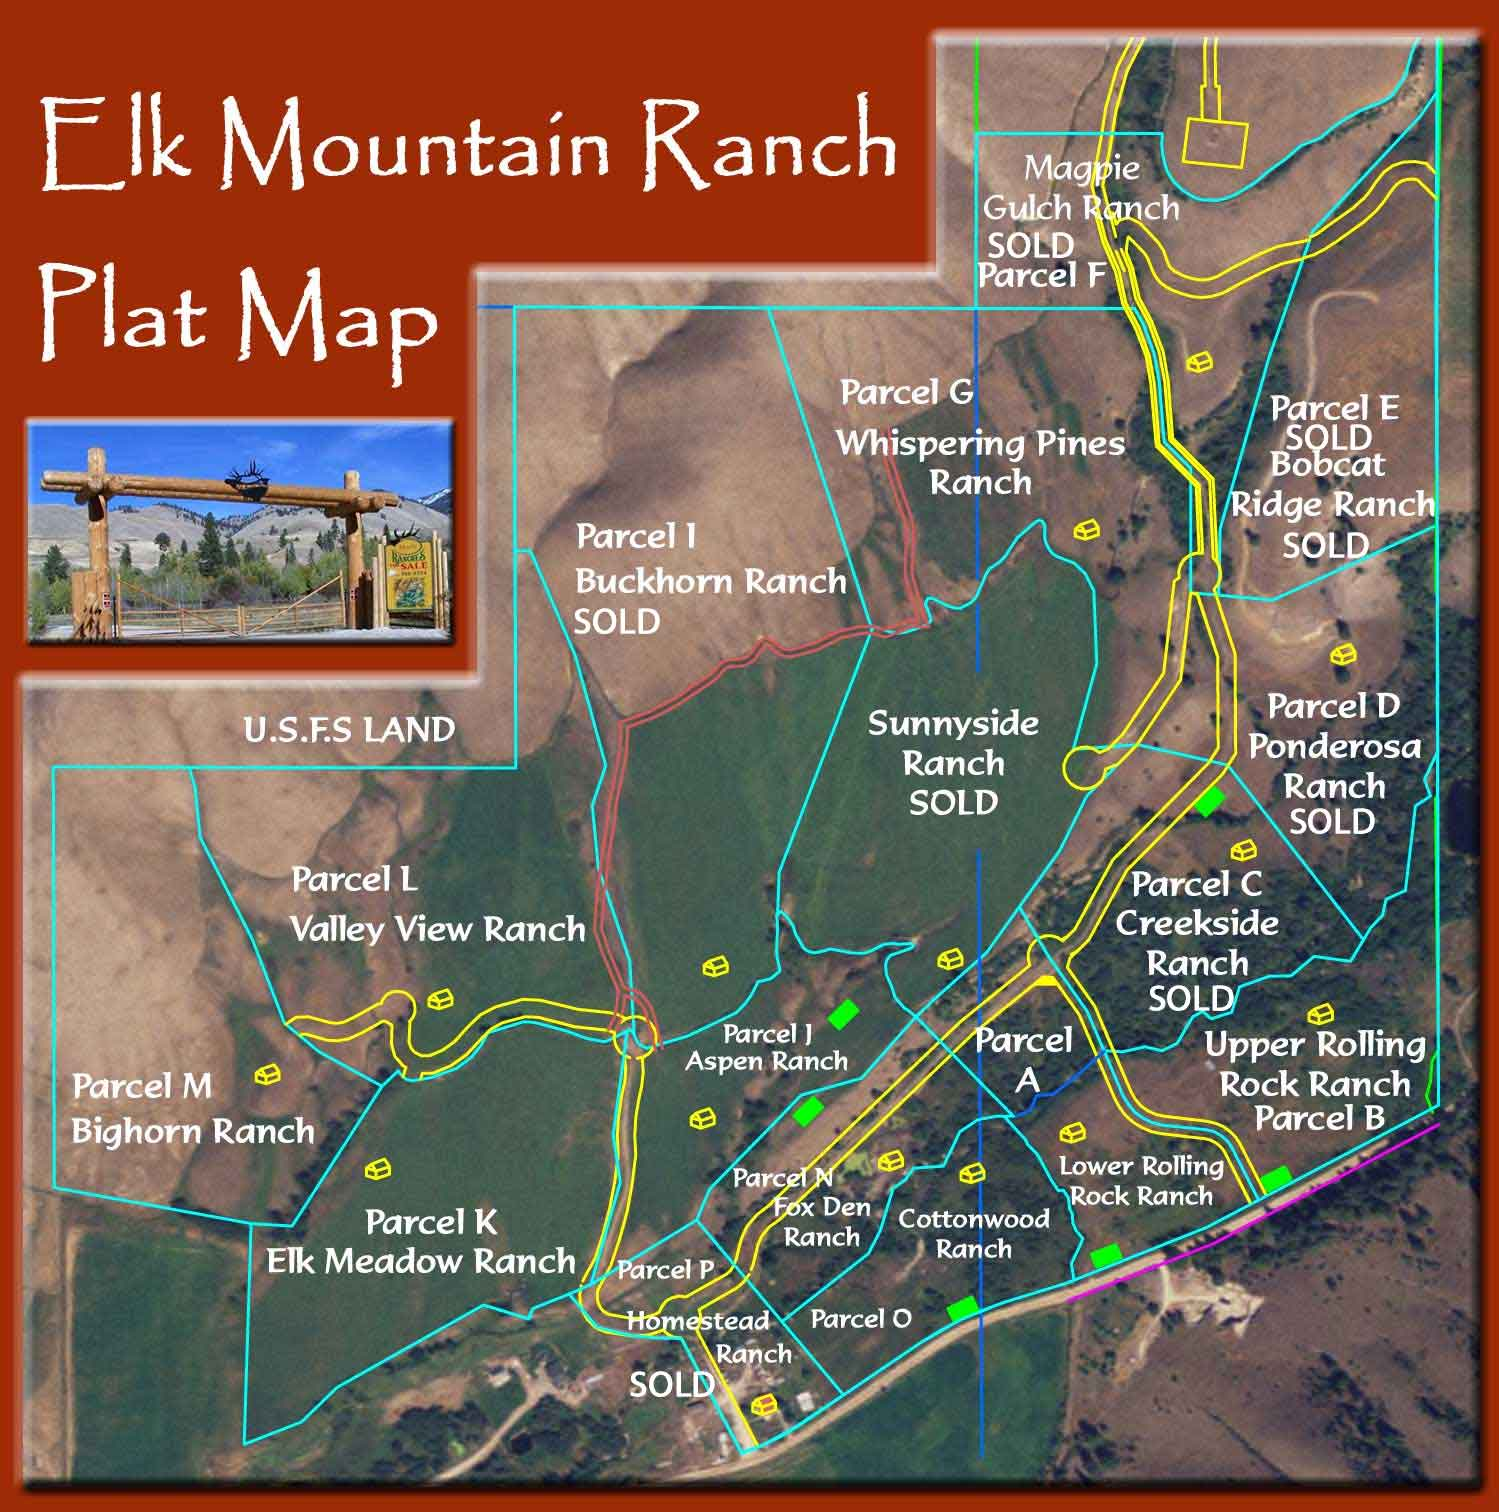 Elk Mountain Ranch Plat Map showing Parcel Division